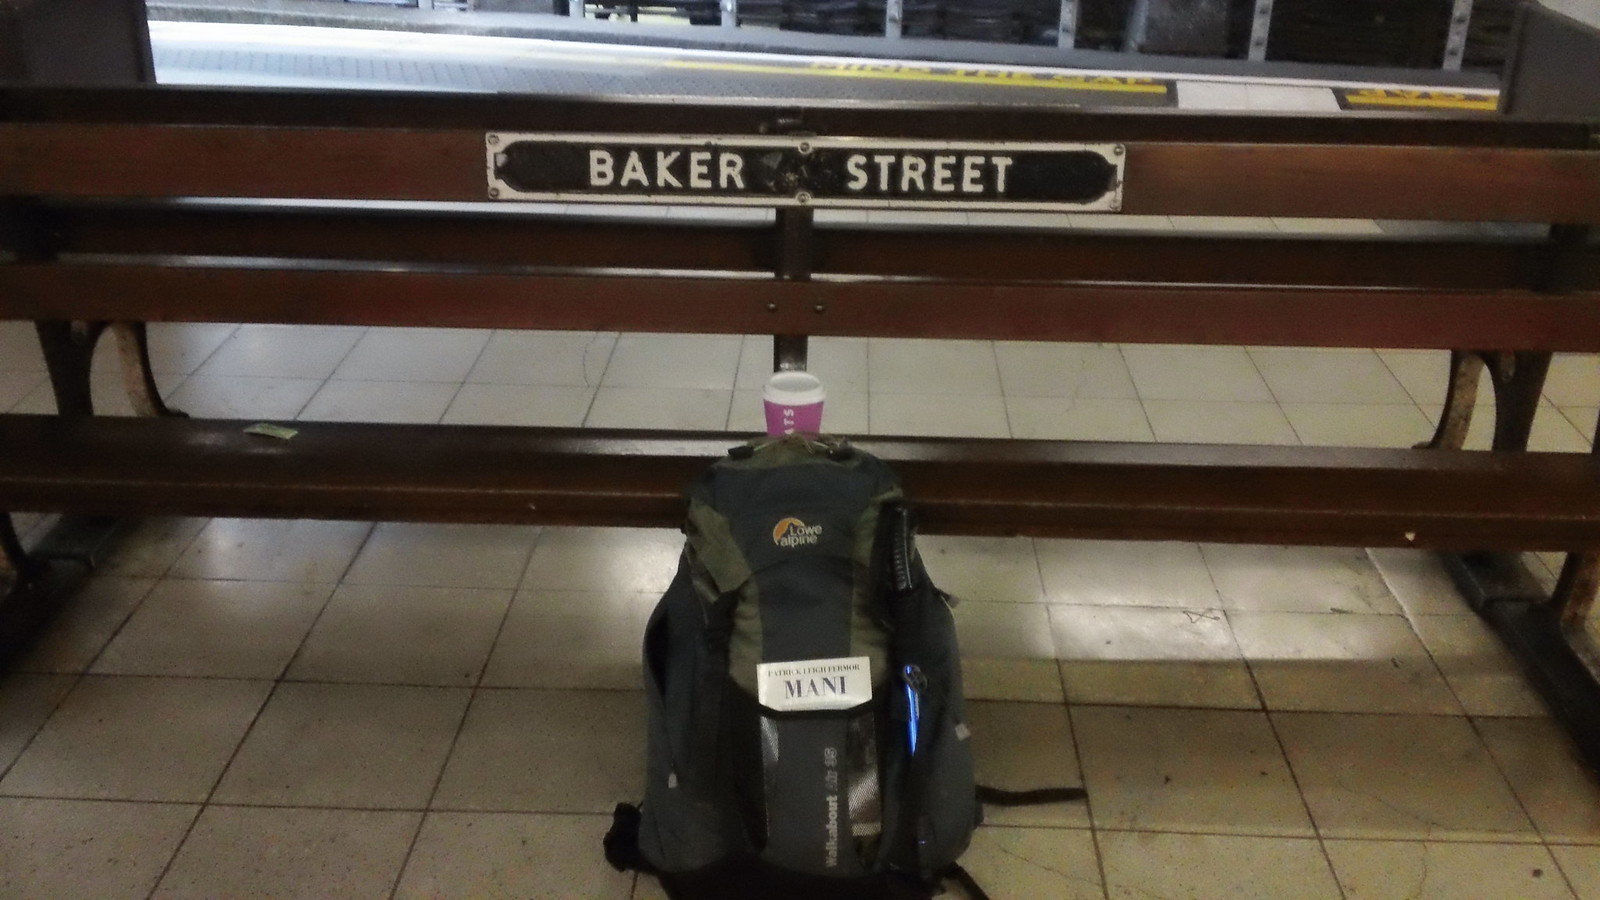 Where to travel from if you fail to catch a Marylebone train: Baker Street ! (Metropolitan line) Forgotten moments in musical history? (Think Gerry Rafferty and that saxophone solo.....by Phil Woods?)